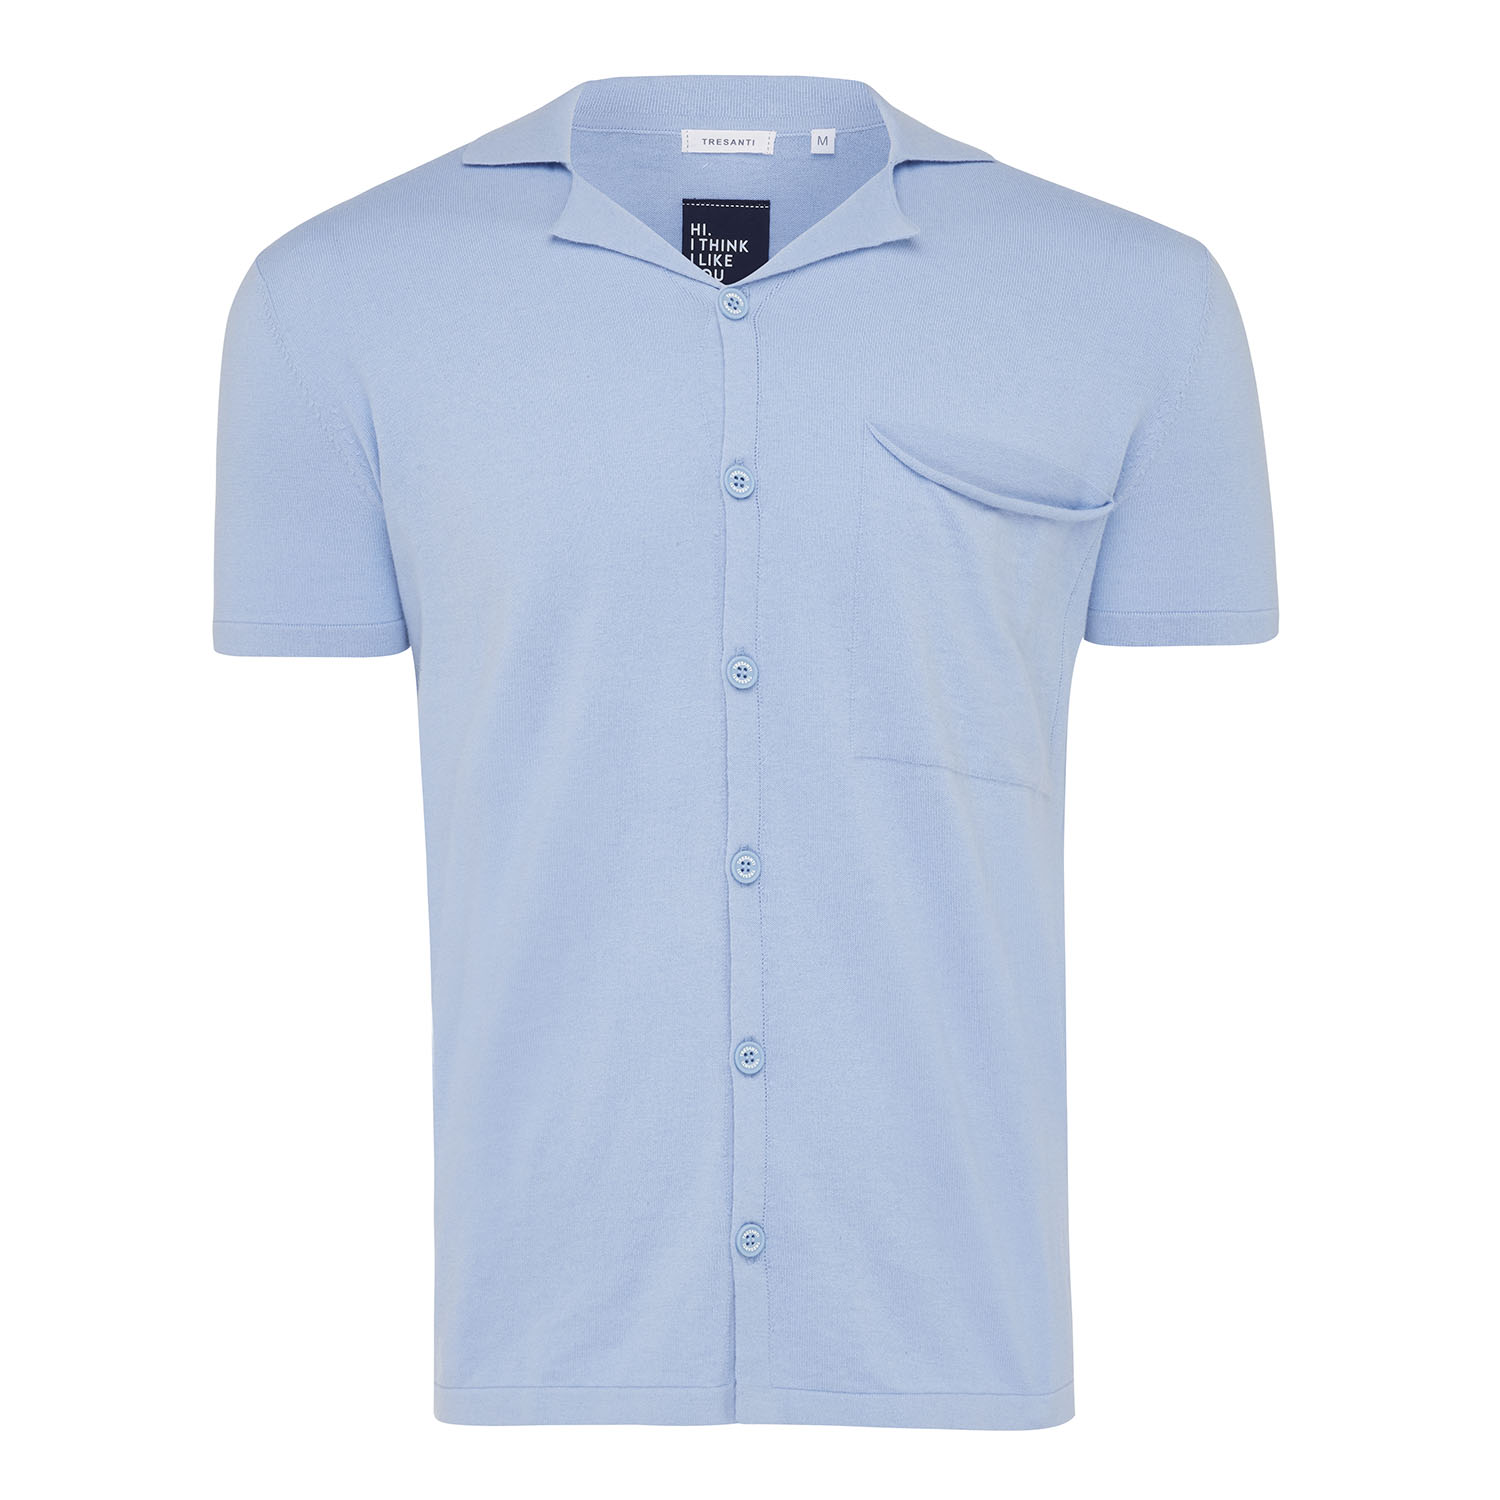 Maxwell | Short sleeve shirt pullover light blue